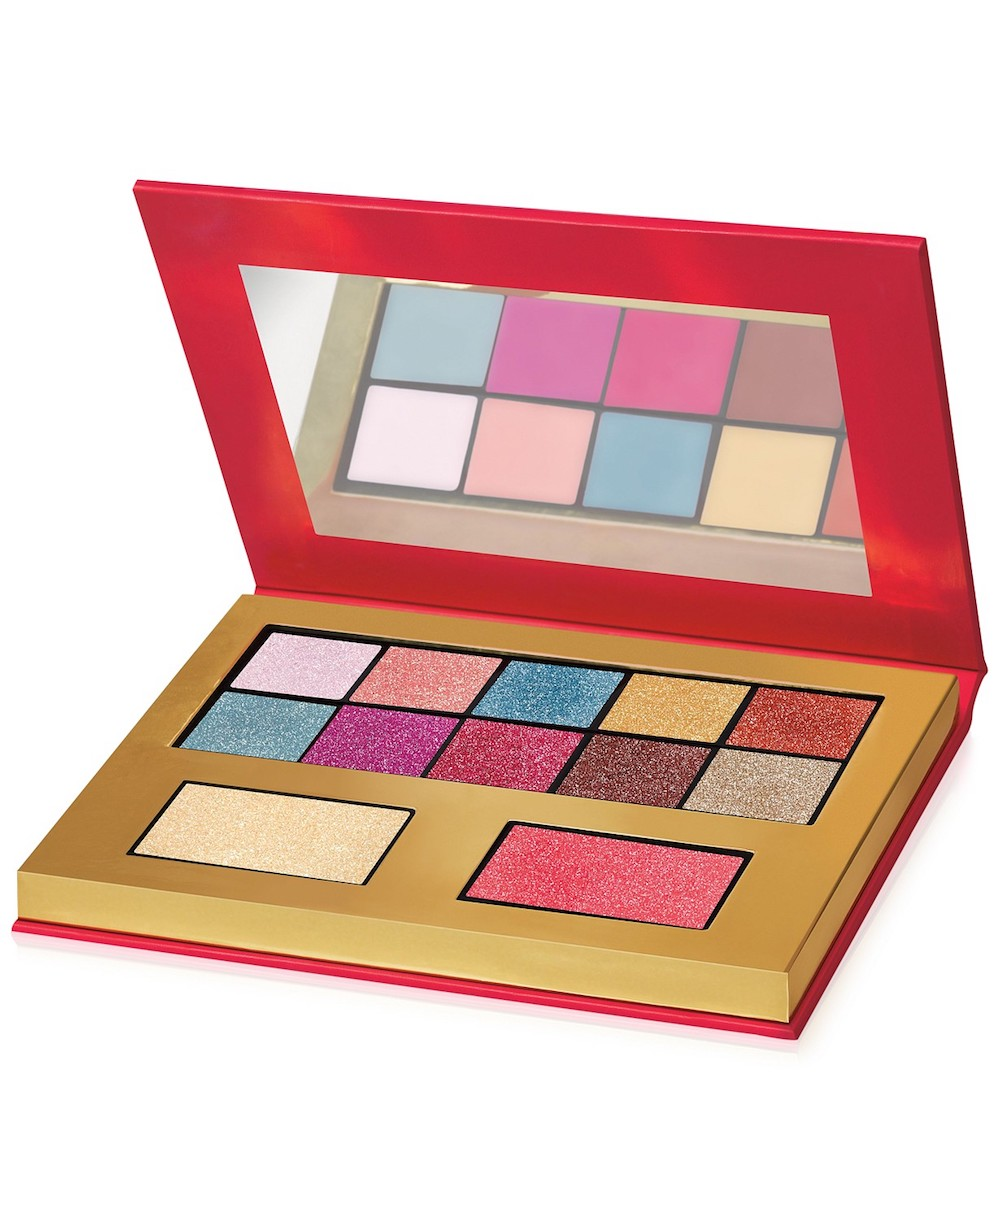 069be6cccda6 Juicy Couture Launched A Makeup Line At Macy s - HelloGiggles